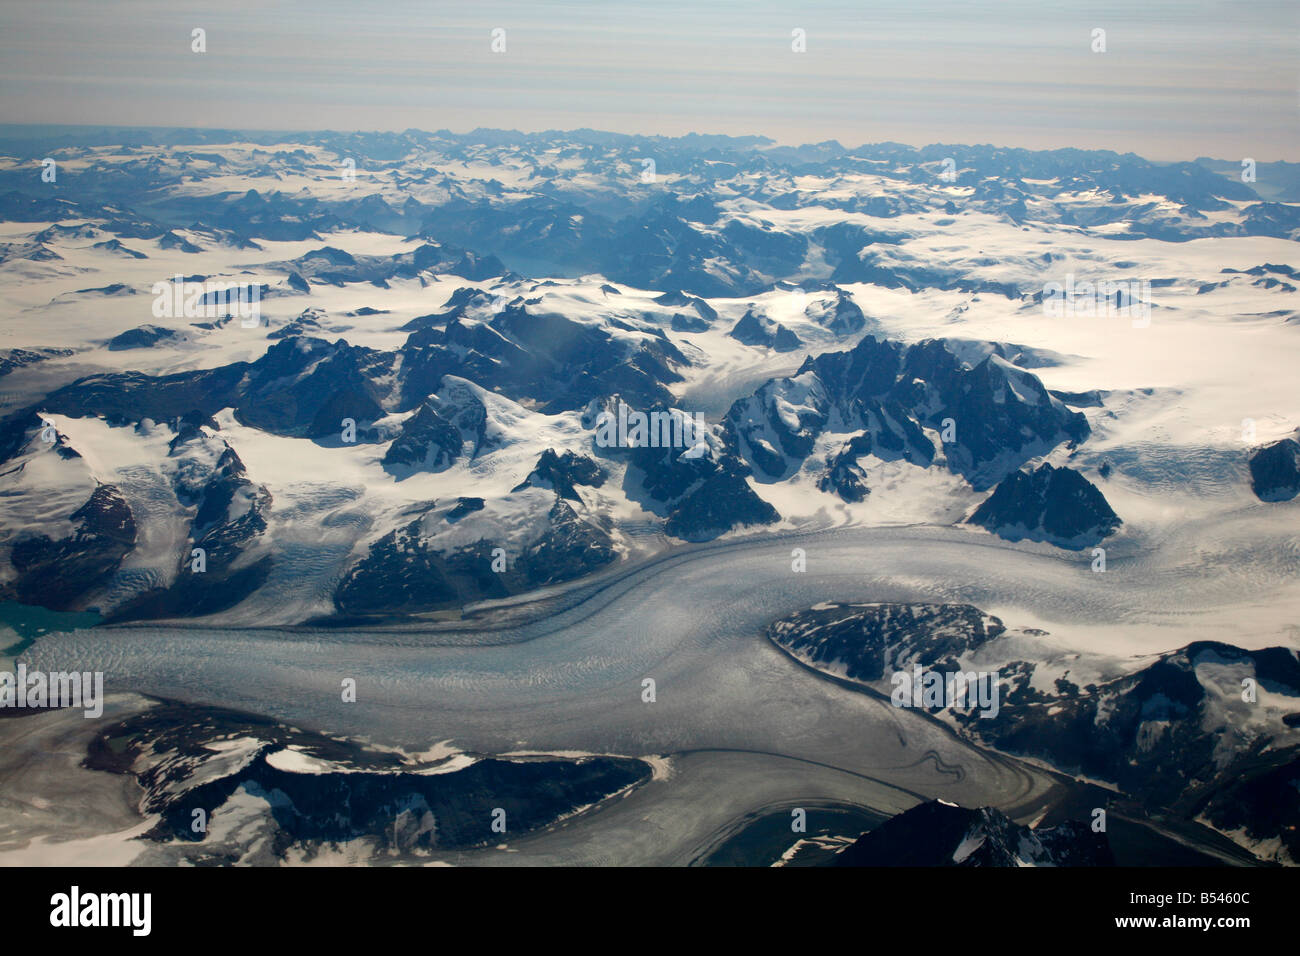 Aug 2008 - A view from the plane over the snow covered mountains Greenland - Stock Image